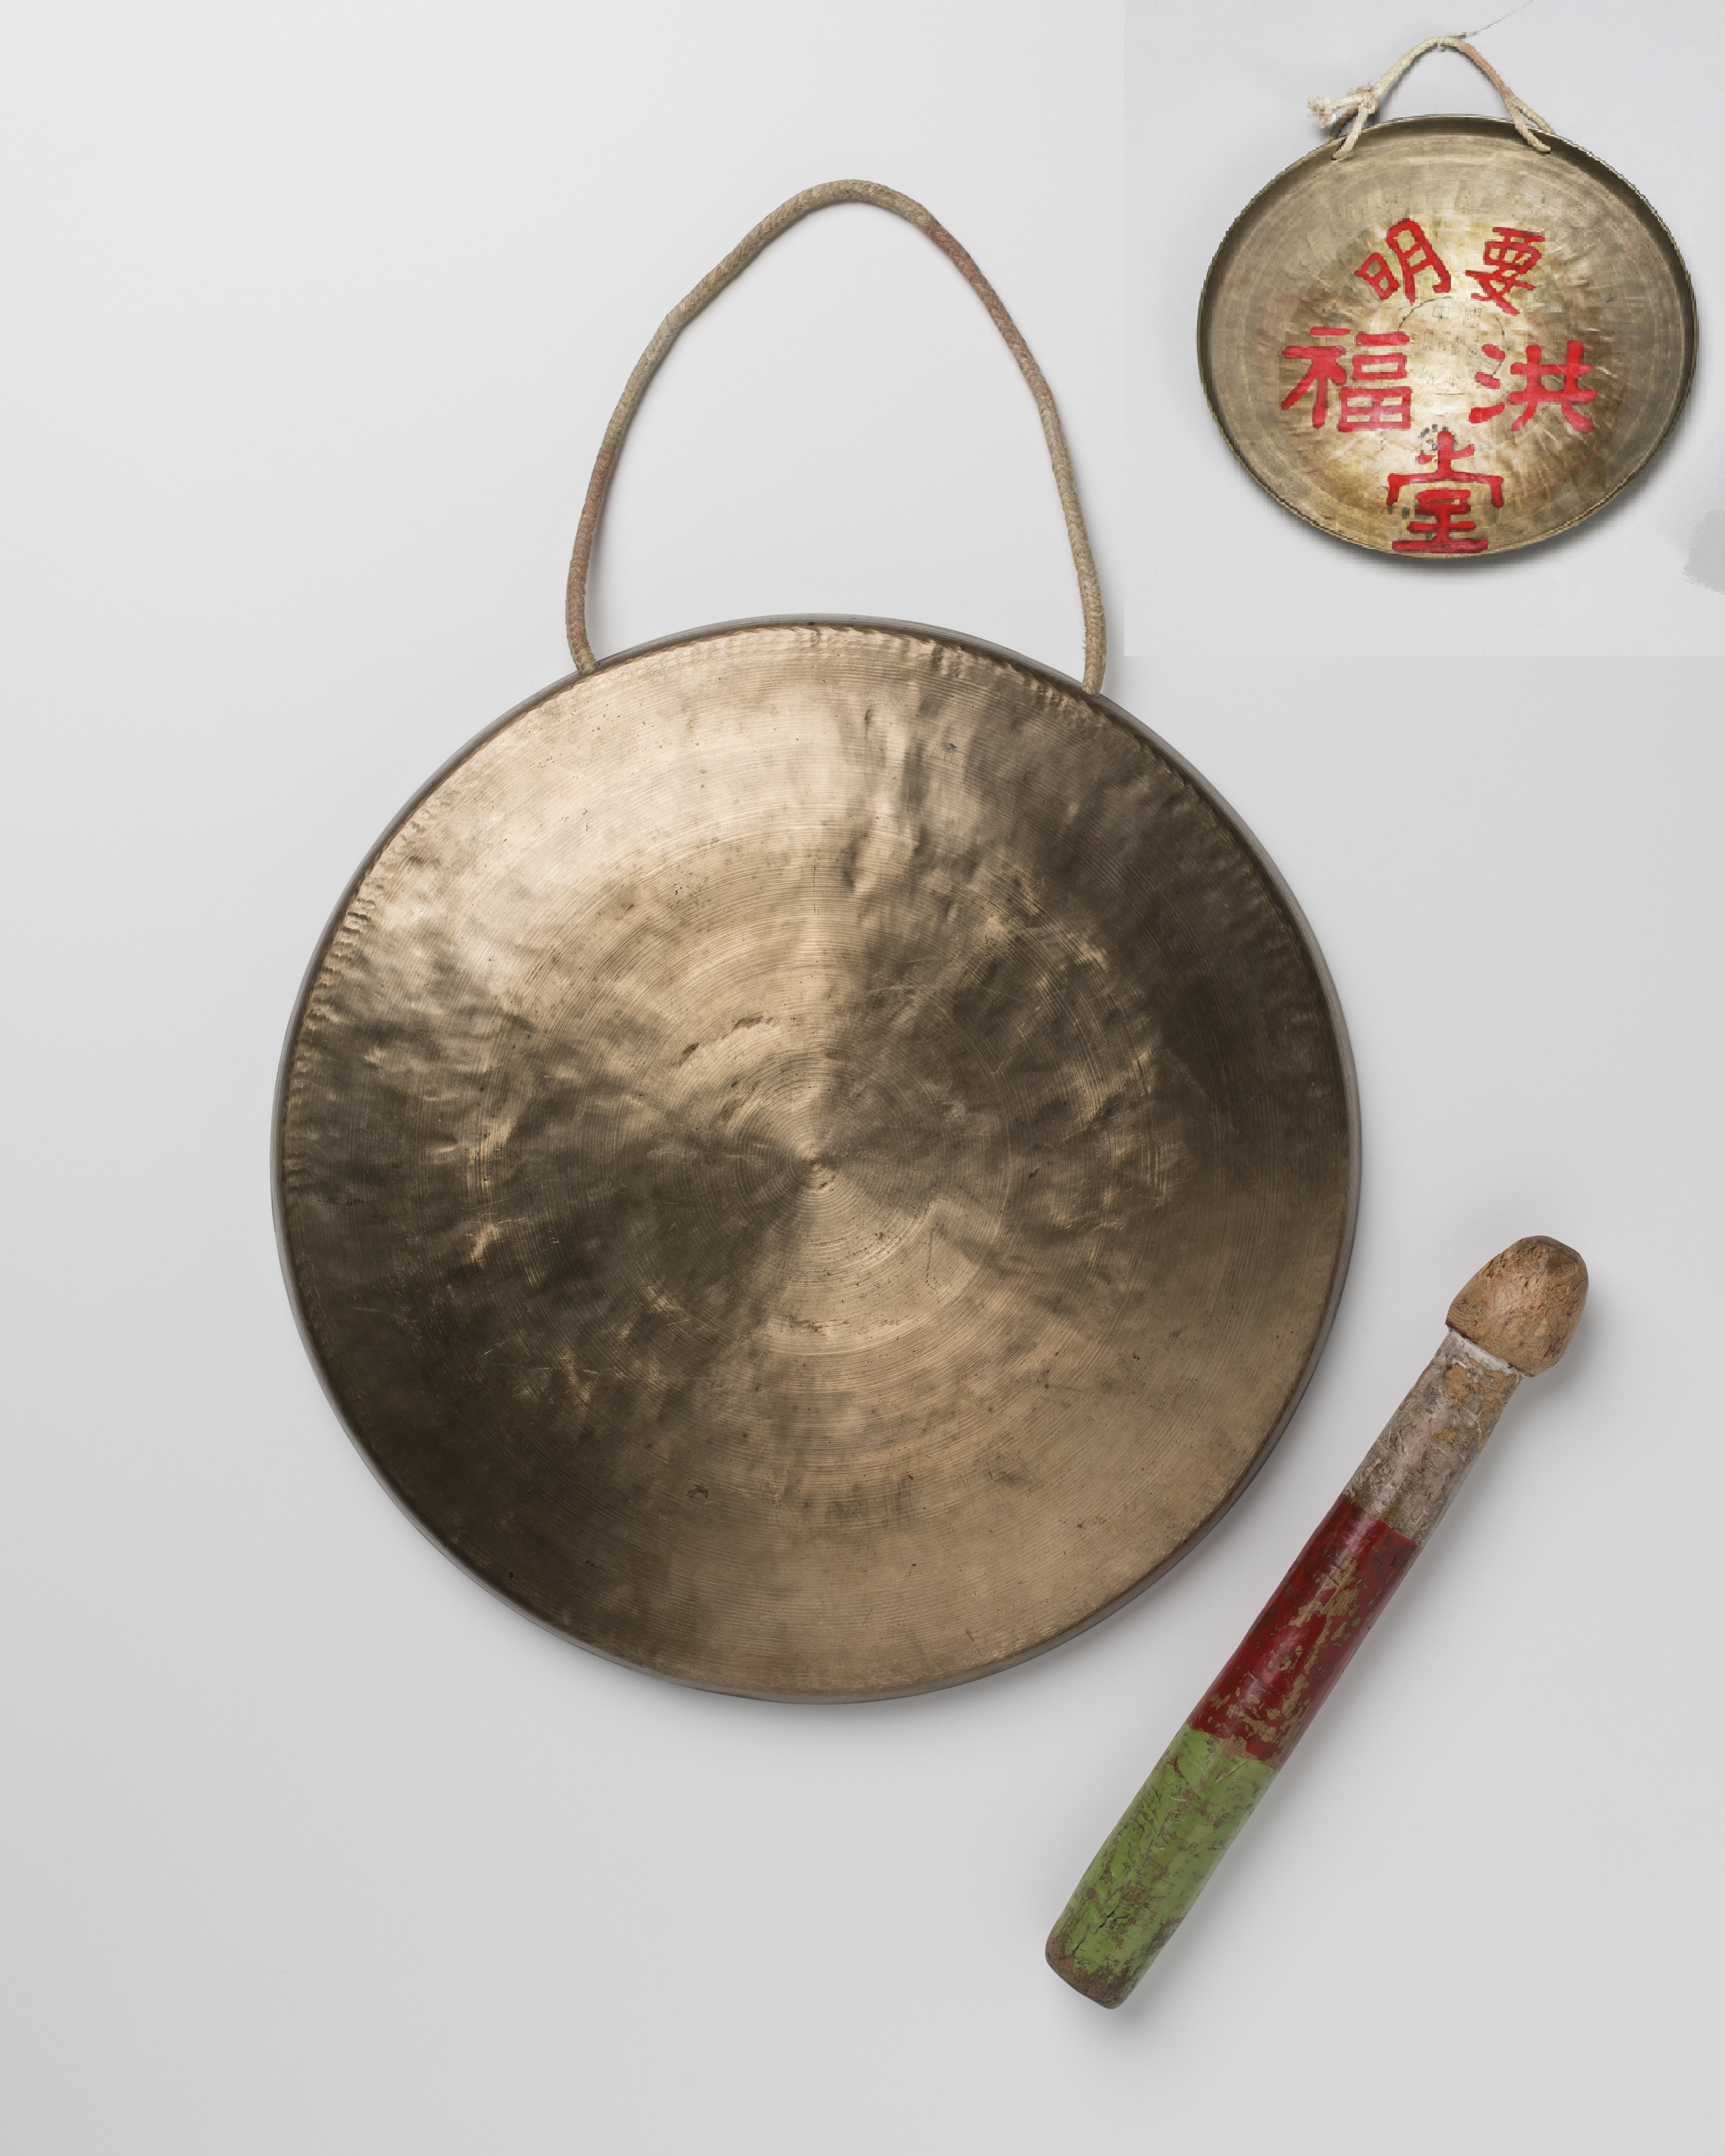 An image of a circular brass gong with cotton cord handle attached with its painted wooden beater to the side. A small image of the reverse of the gong with Chinese characters in red is in the top right corner of the image.